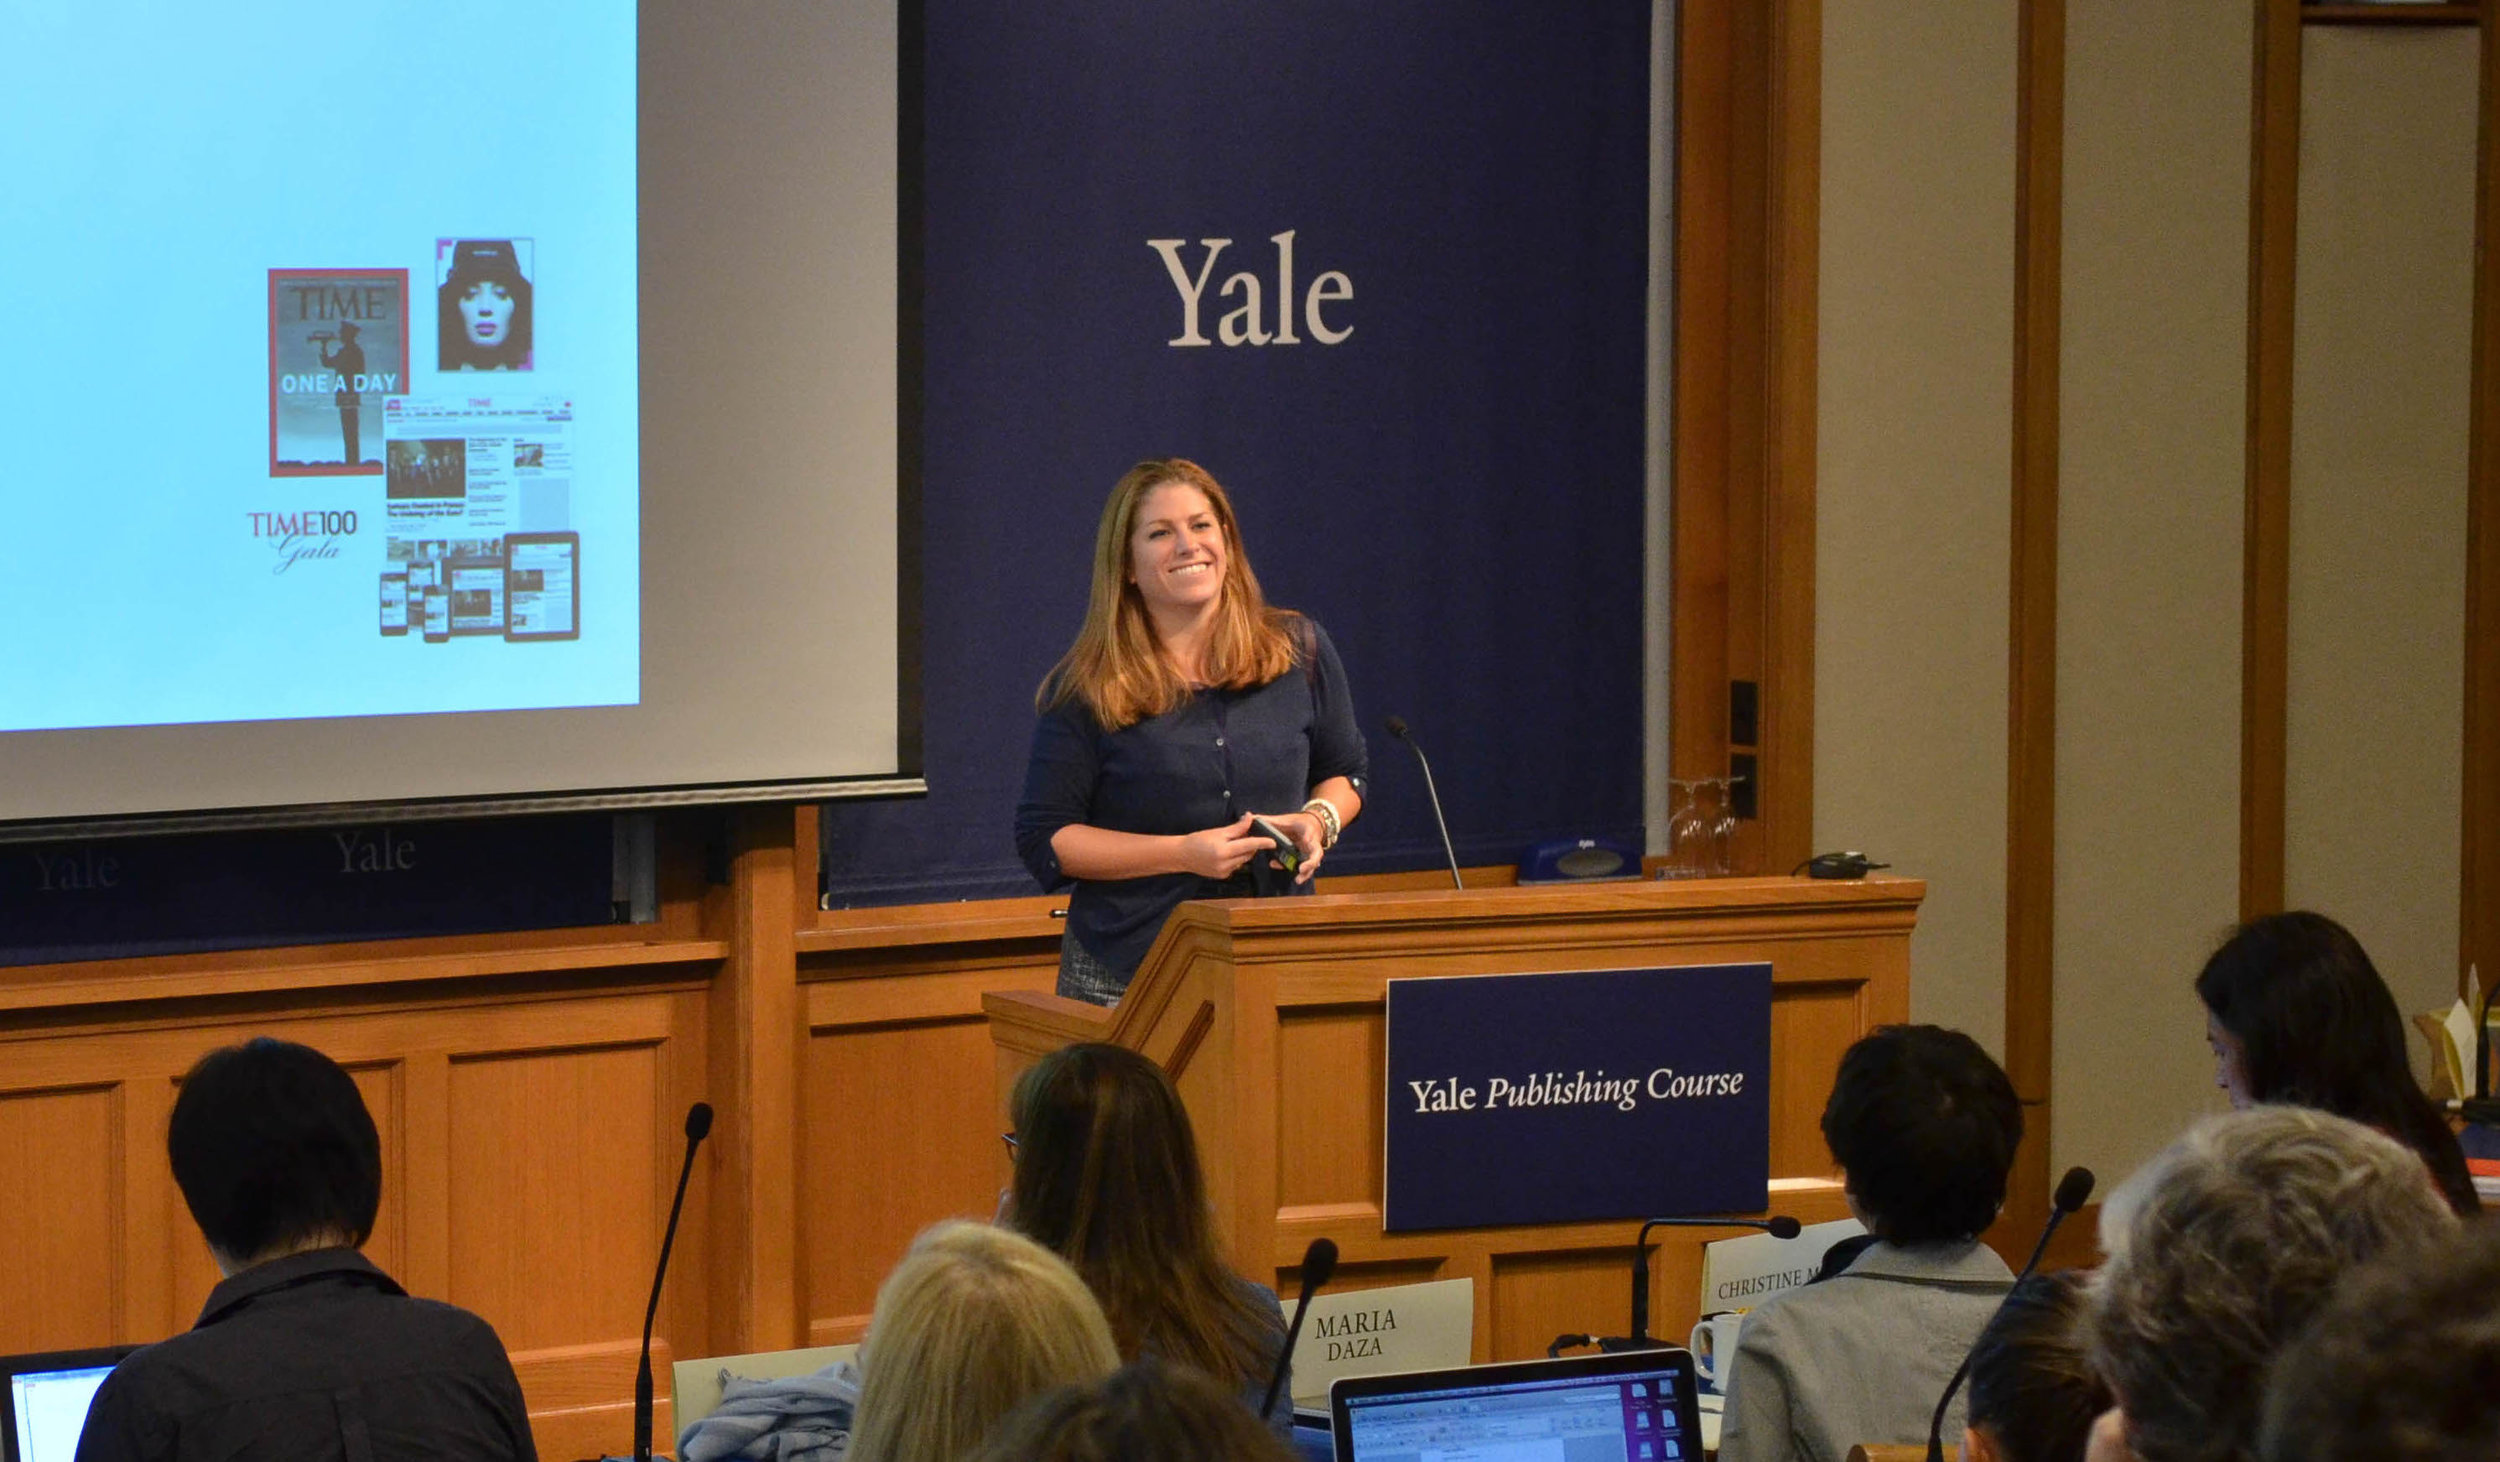 Yale Publishing Course Conference Speaker